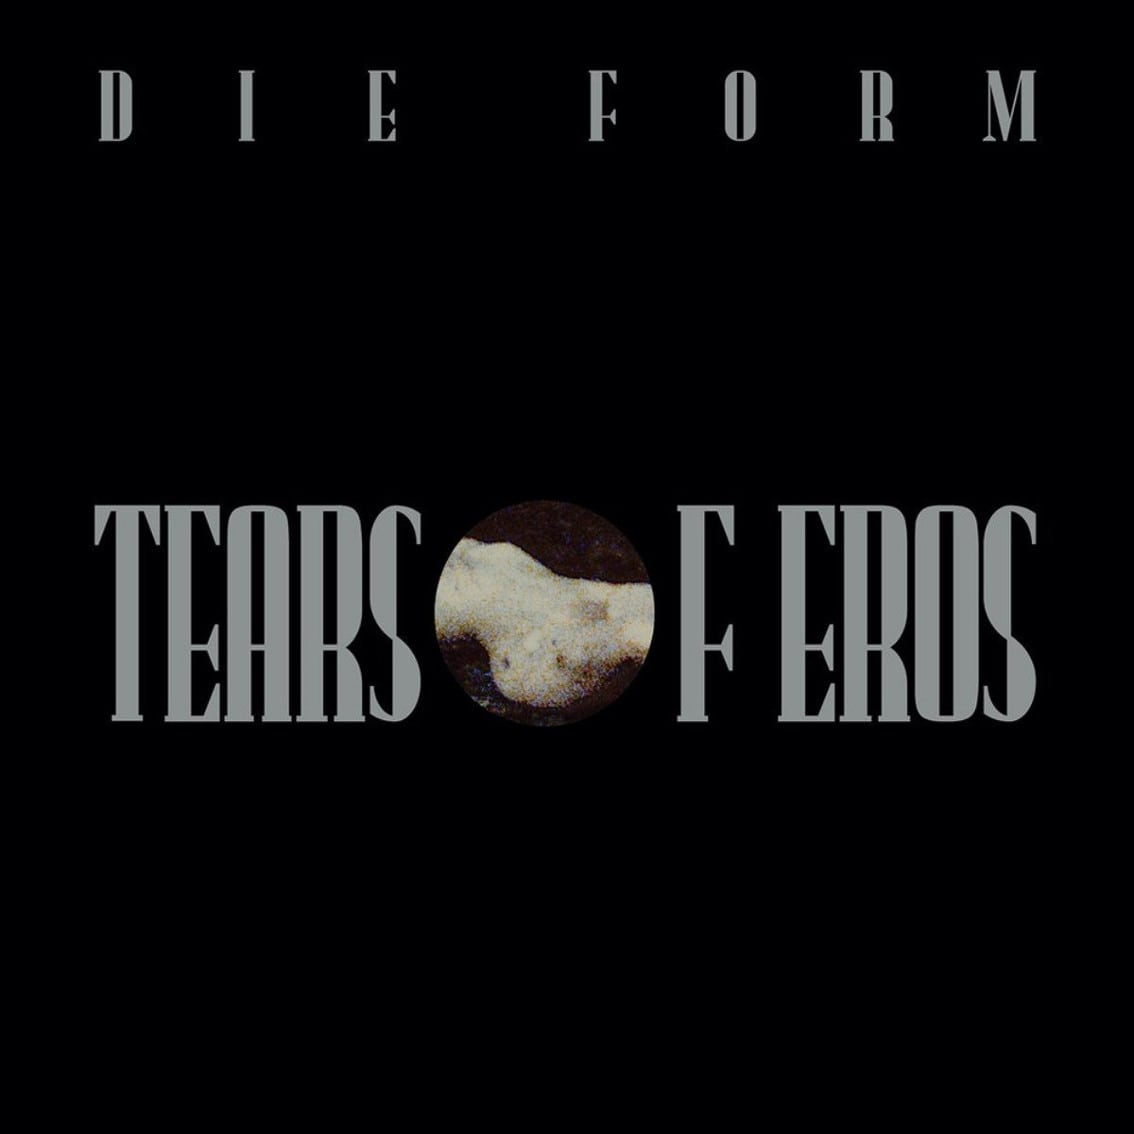 Die Form reissue'Tears of Eros' on vinyl for the very first time including bonus